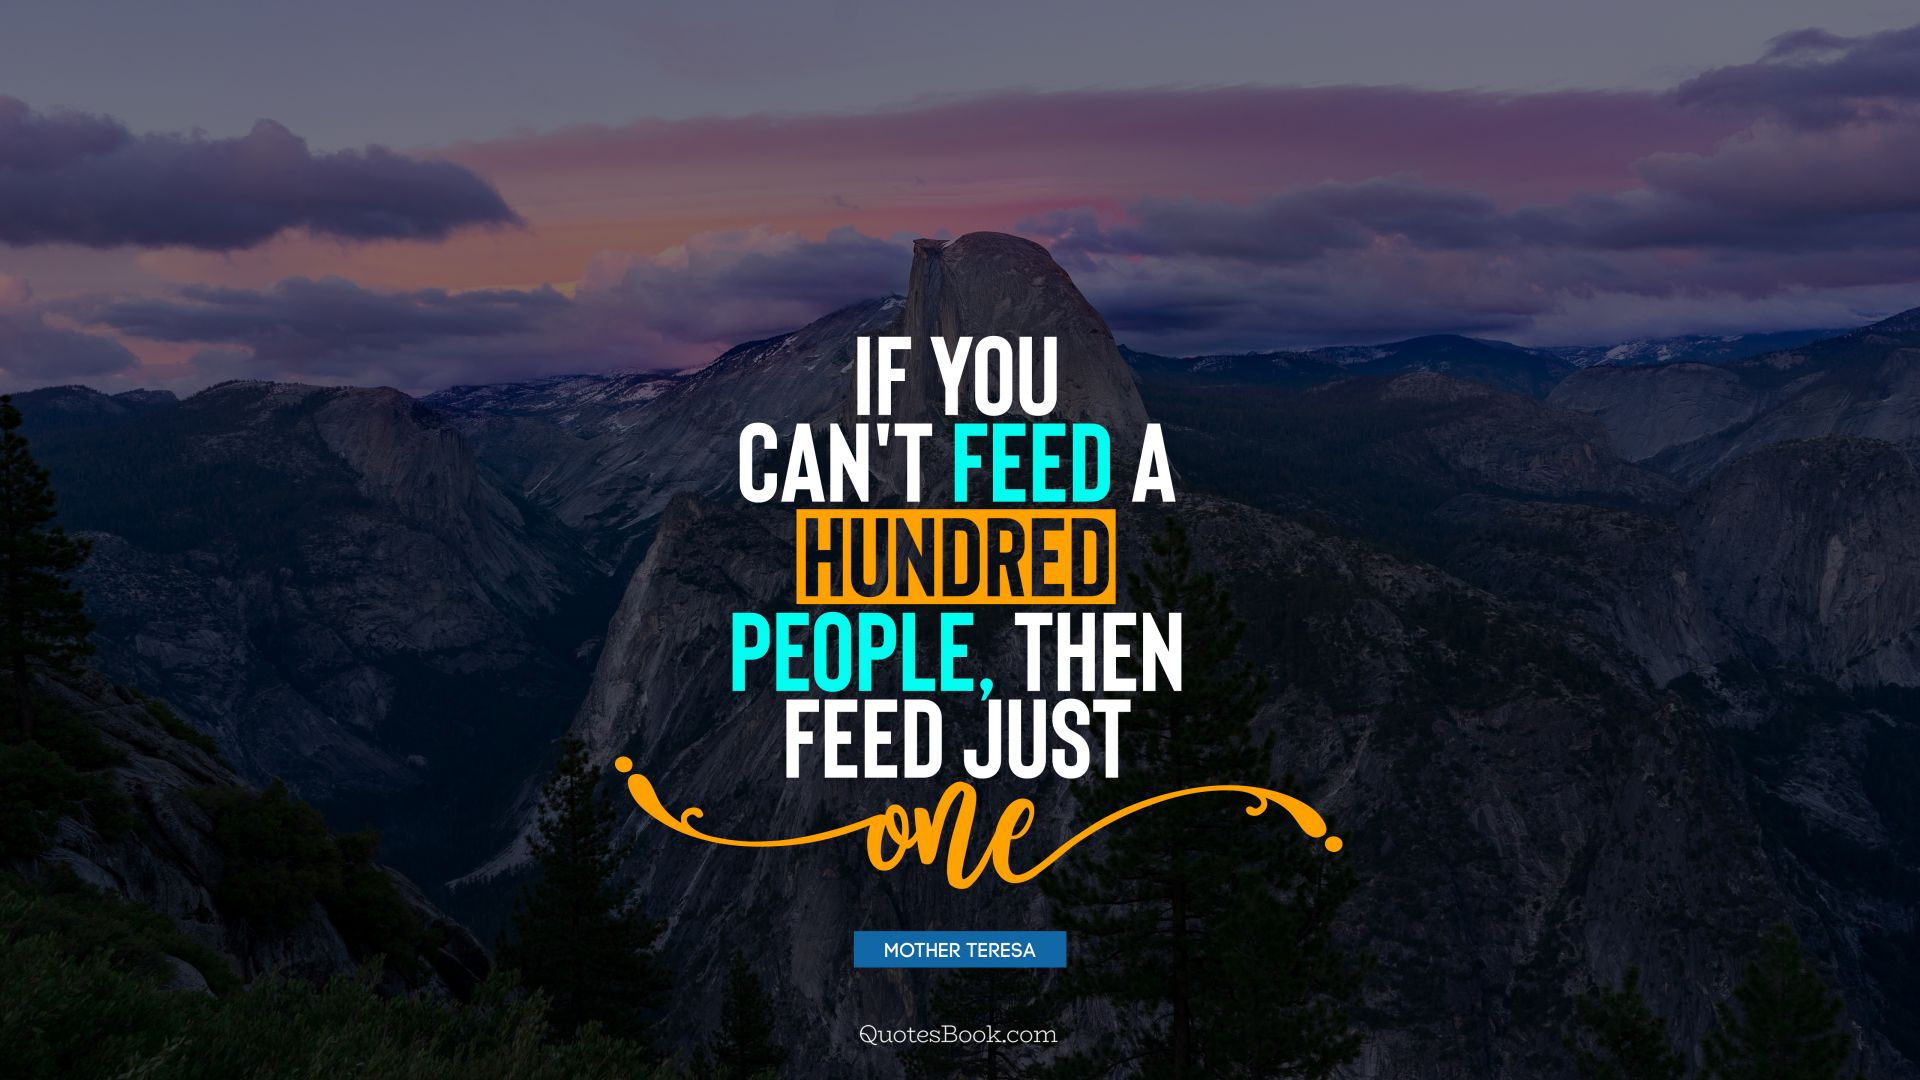 If you can't feed a hundred people, then feed just one. - Quote by Mother Teresa